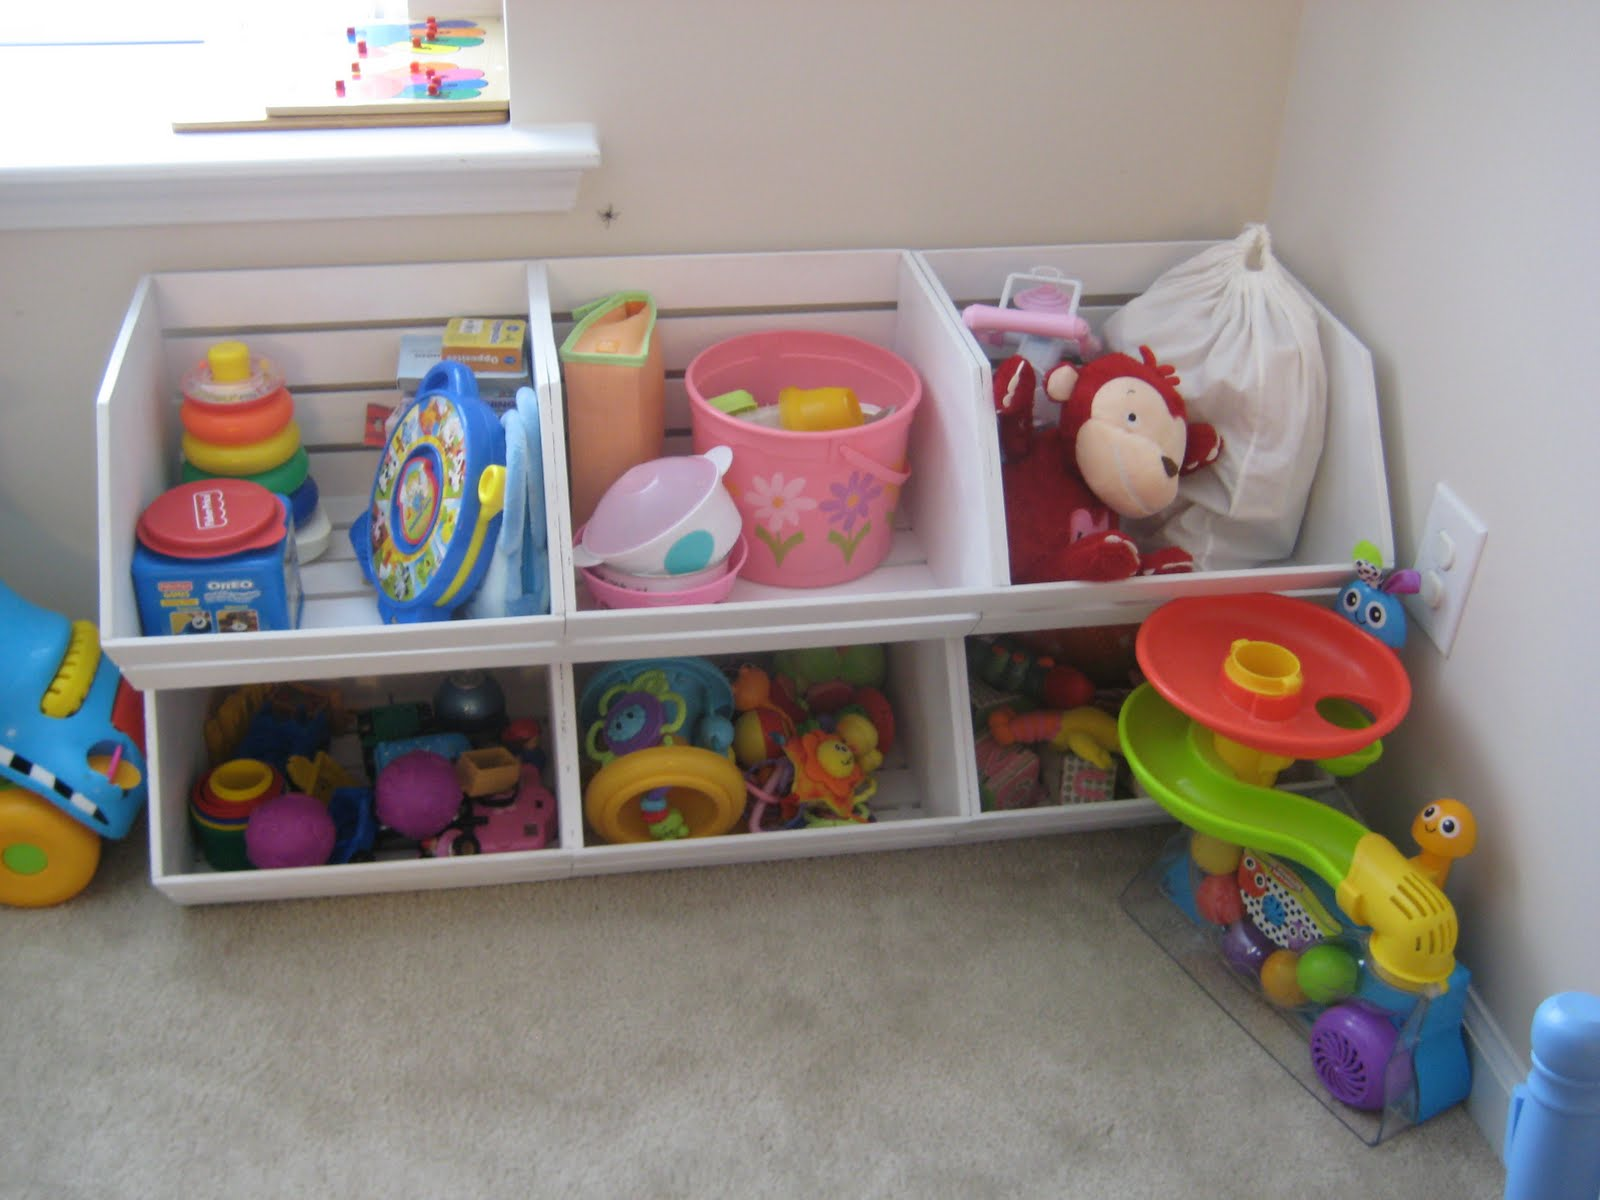 Leaf And Letter Handmade: Pottery Barn Kids-esque Toy Storage